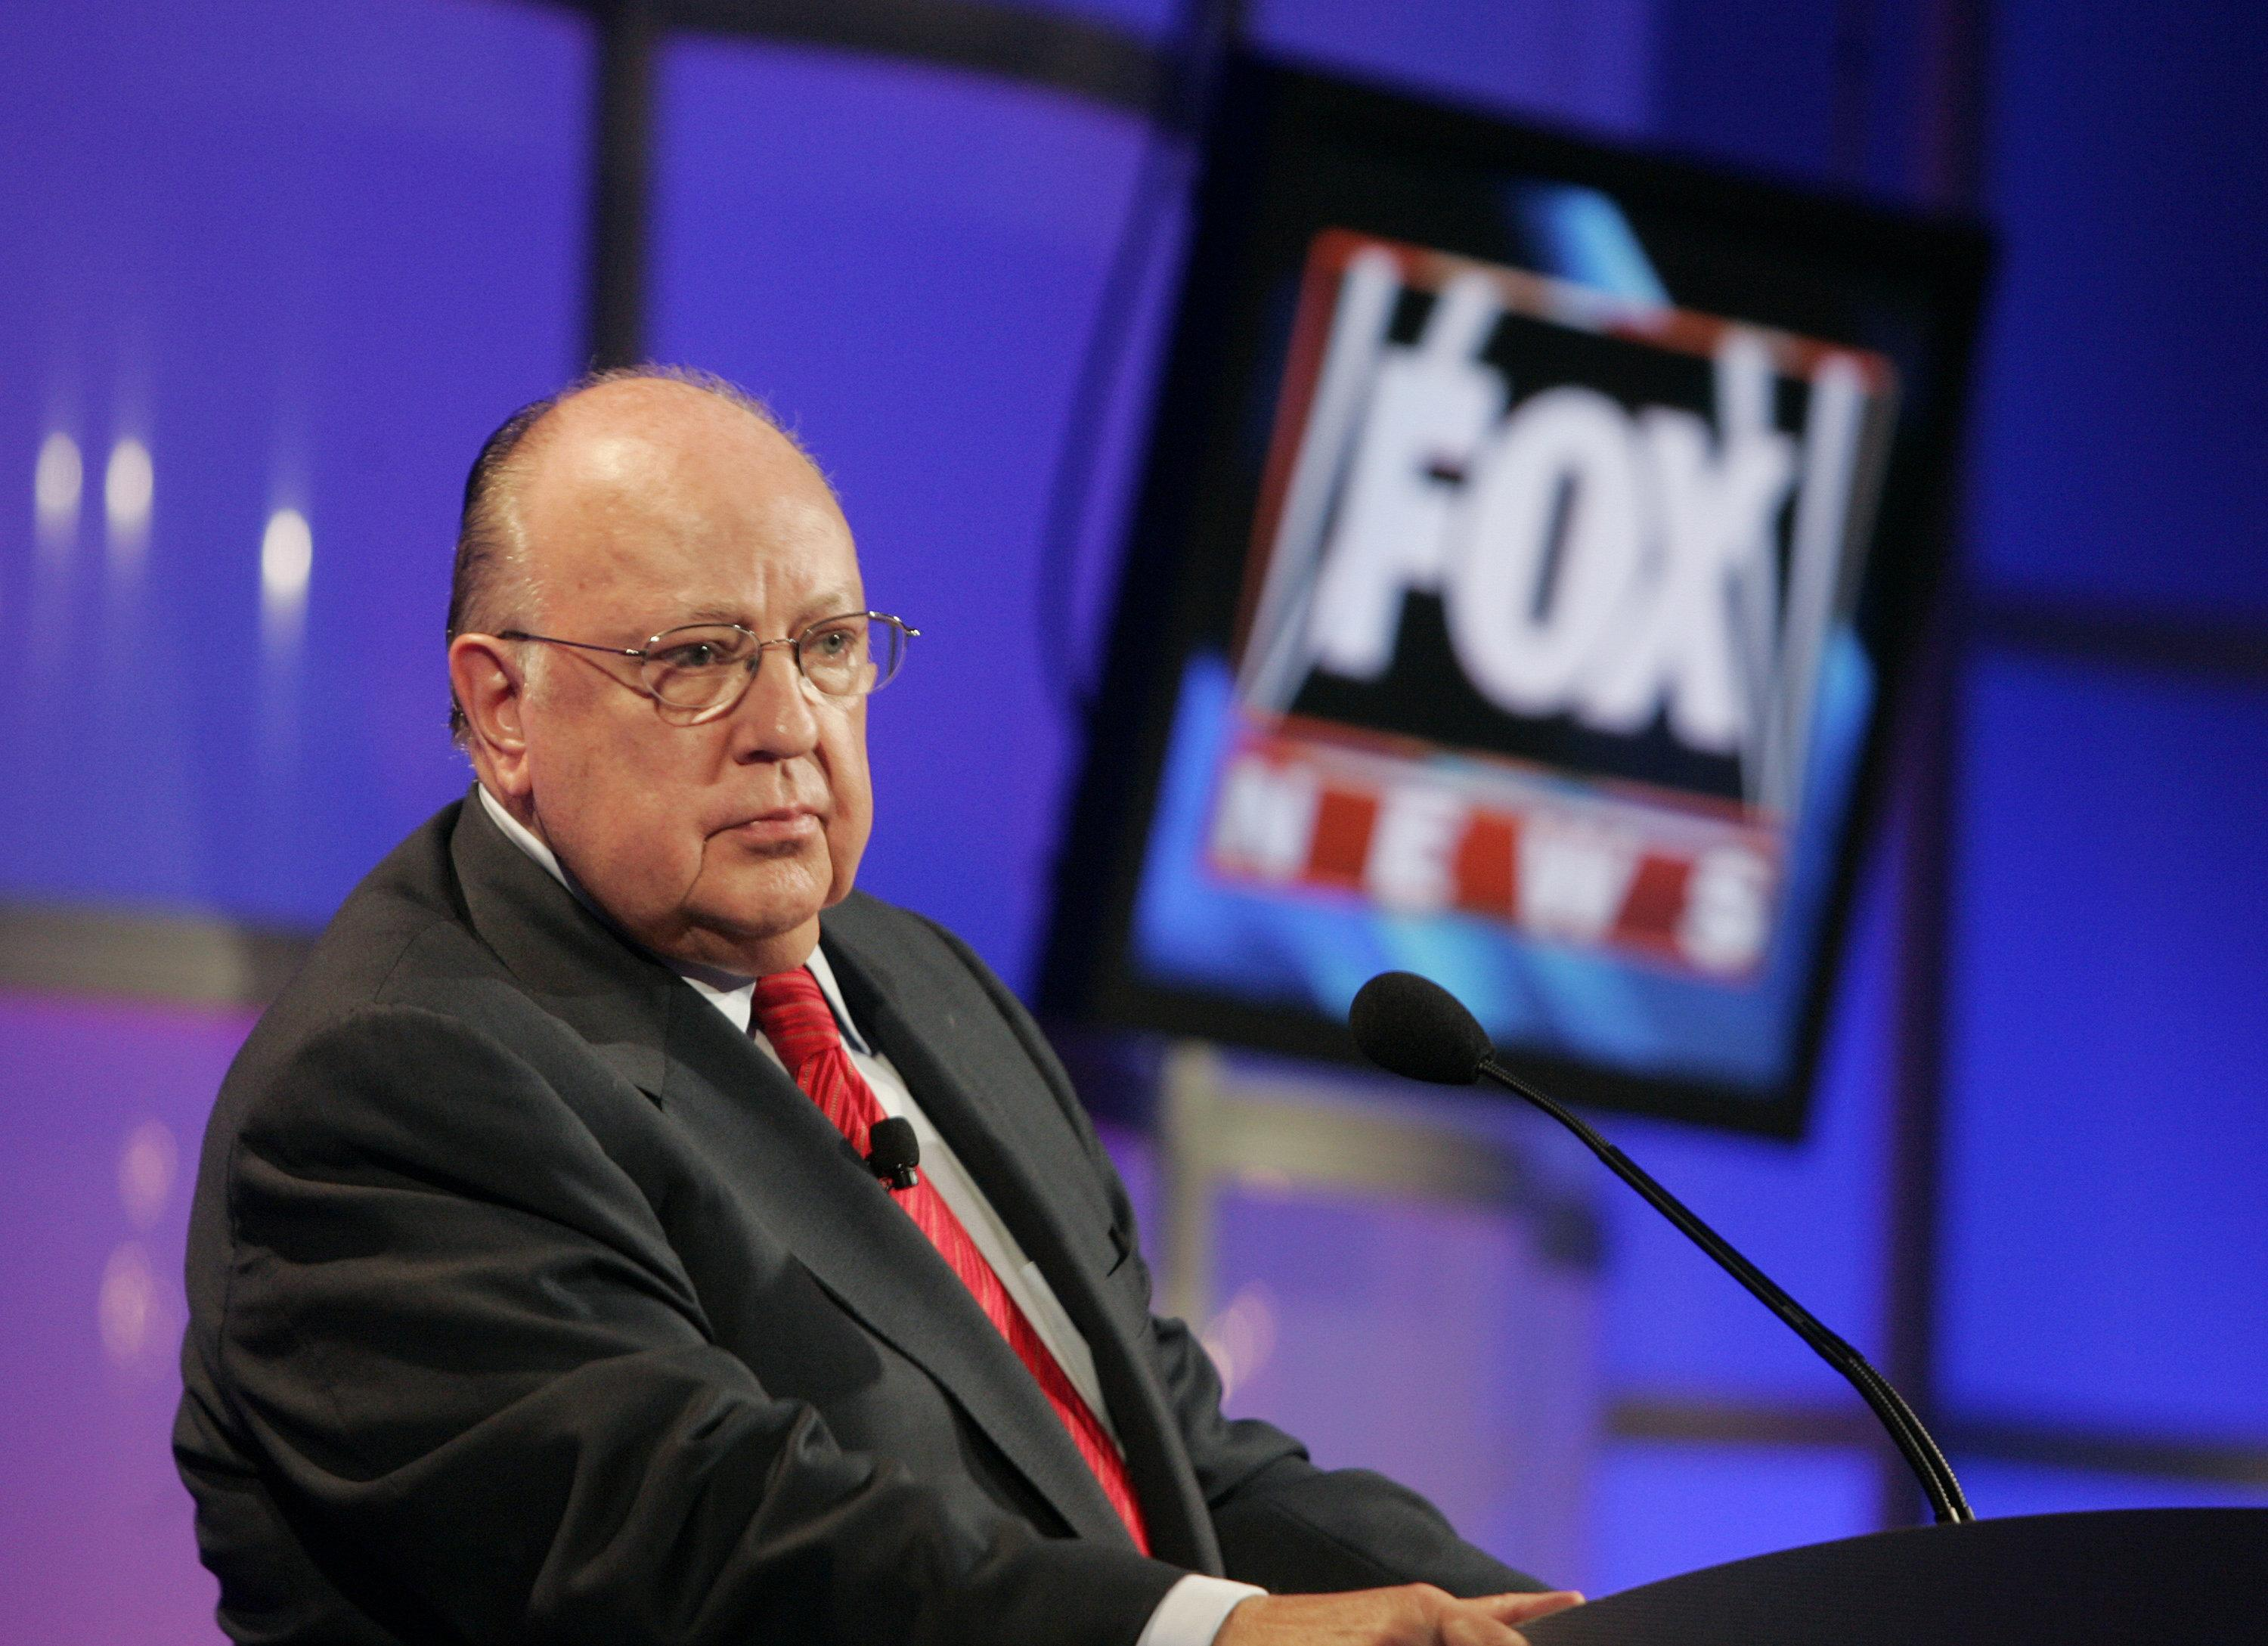 Roger Ailes (REUTERS/Fred Prouser)